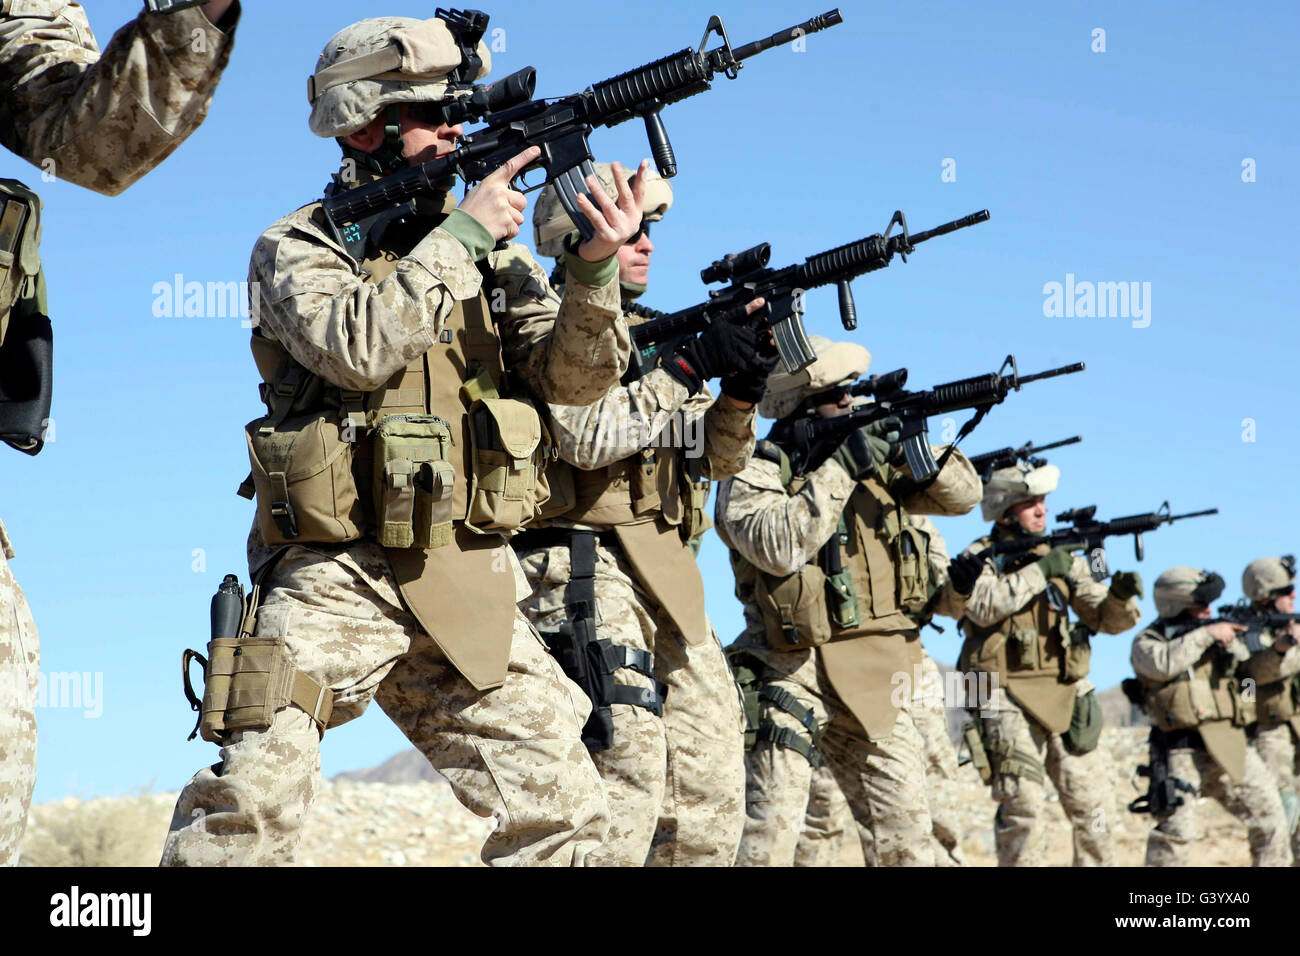 Military Transistion Team members quickly reload their rifles. - Stock Image